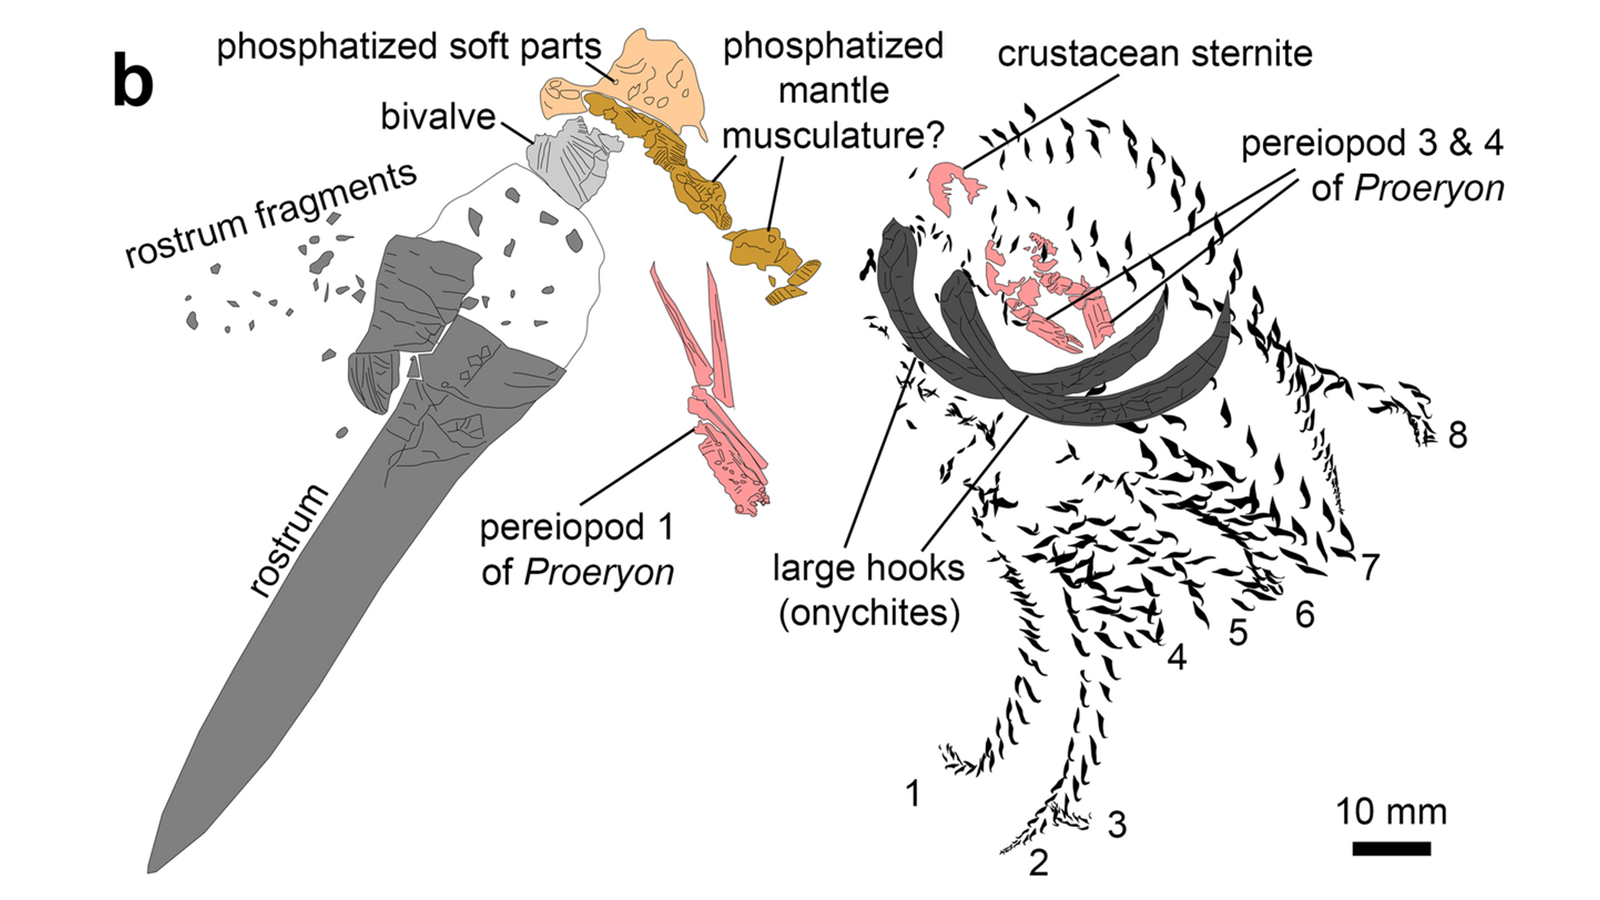 Diagram of the identifiable fossil fragments